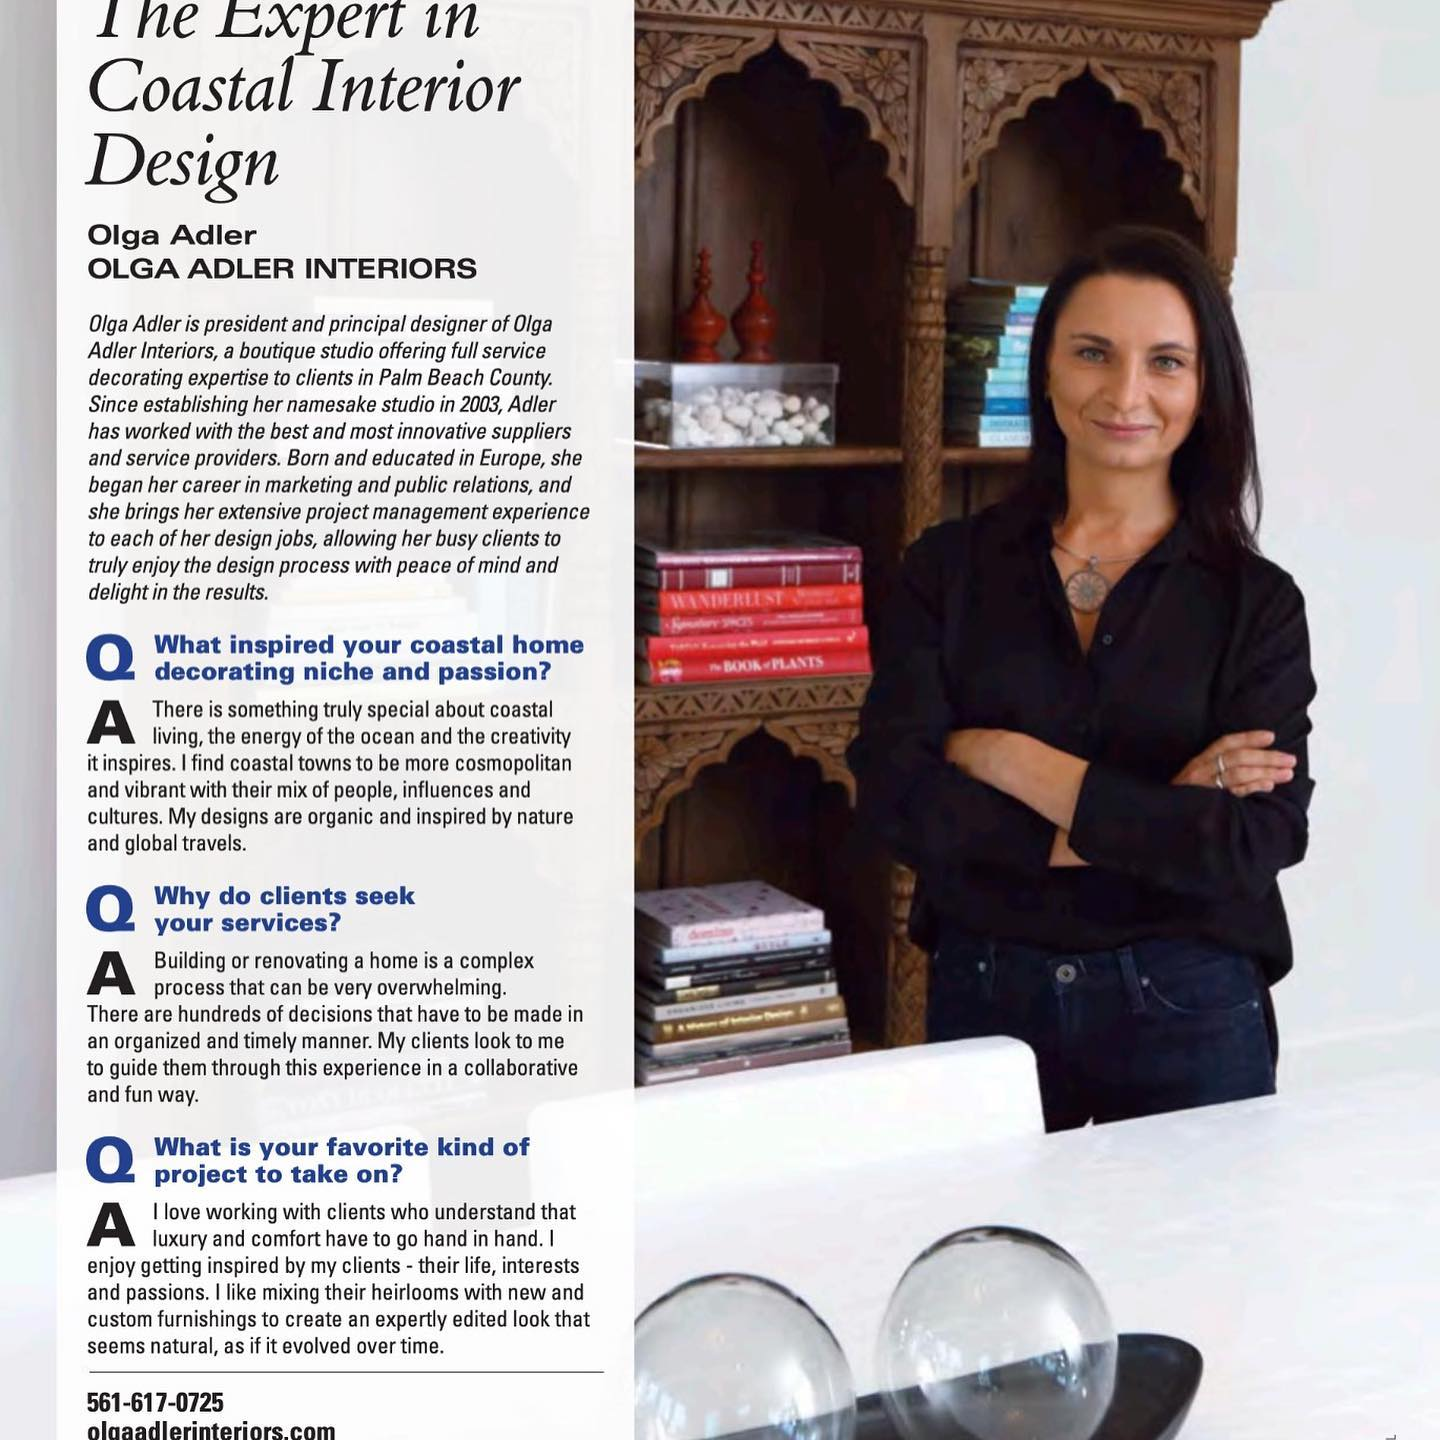 Thank you Boca Magazine for a lovely feature among Boca Magazines's Experts @bocamag #interiordesign #interiordesigner #delraybeachinteriordesigner #bocaratoninteriordesign #delraybeach #delraybeachfl #coastalliving #coastaldecor #coastalinteriors #coastalhome #coastalinteriors #olgaadlerinteriors #olgaadler #olgaadlerint @ Olga Adler Interiors - Interior Design and Decor